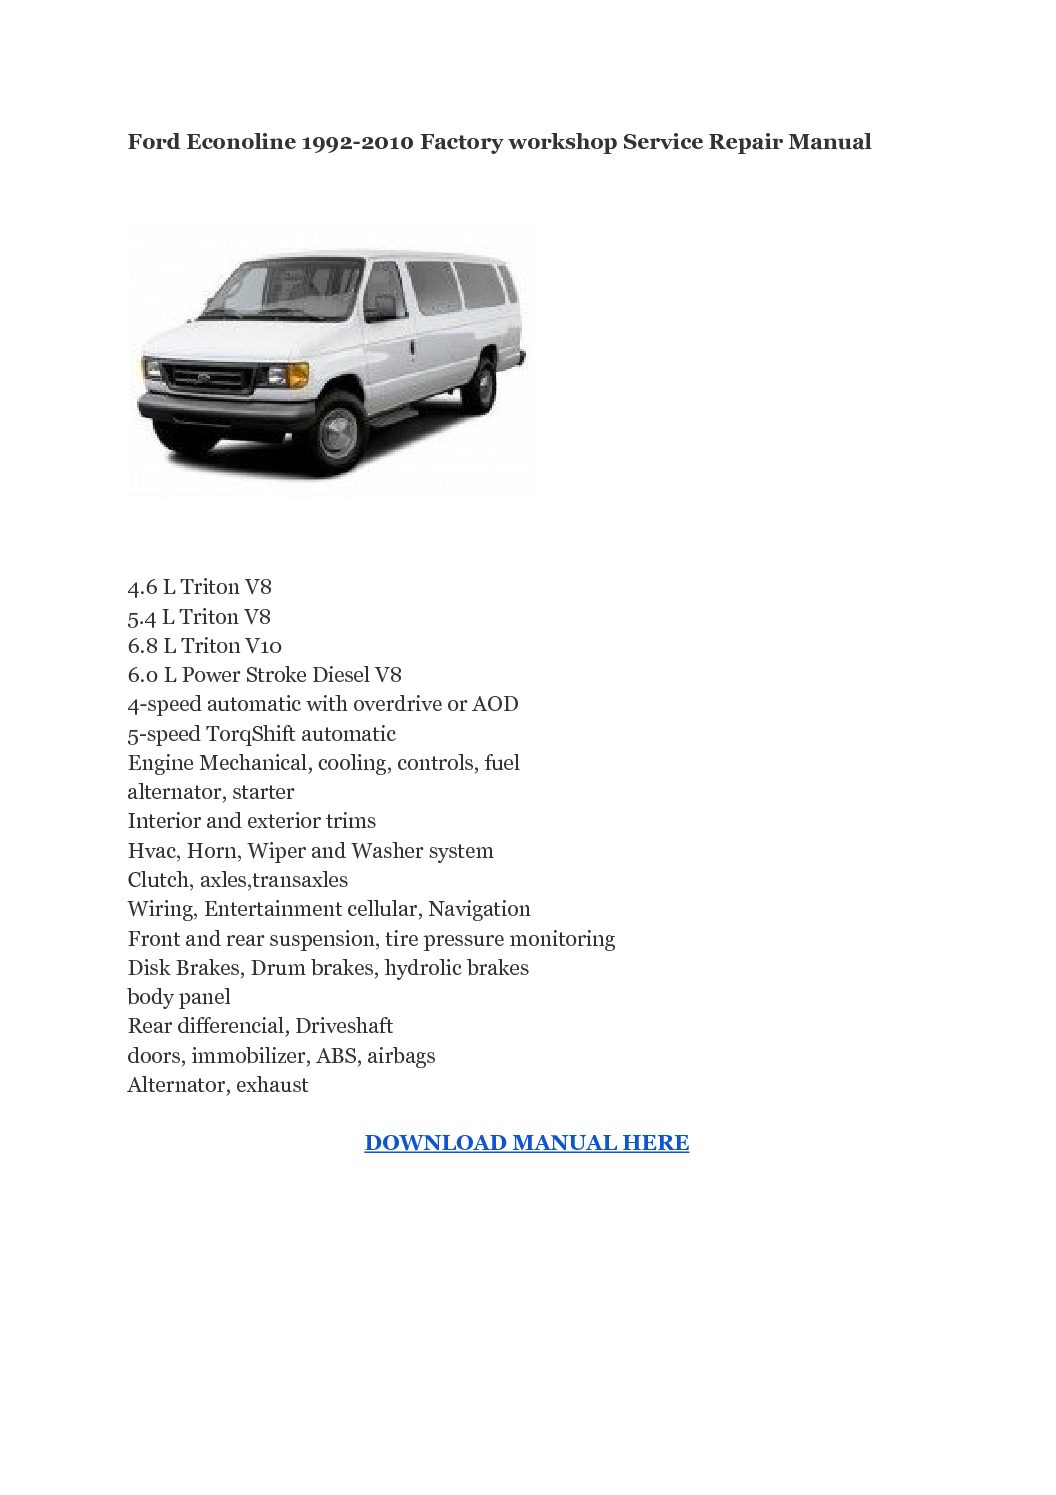 Ford Econoline 1992-2010 Factory workshop Service Repair Manual